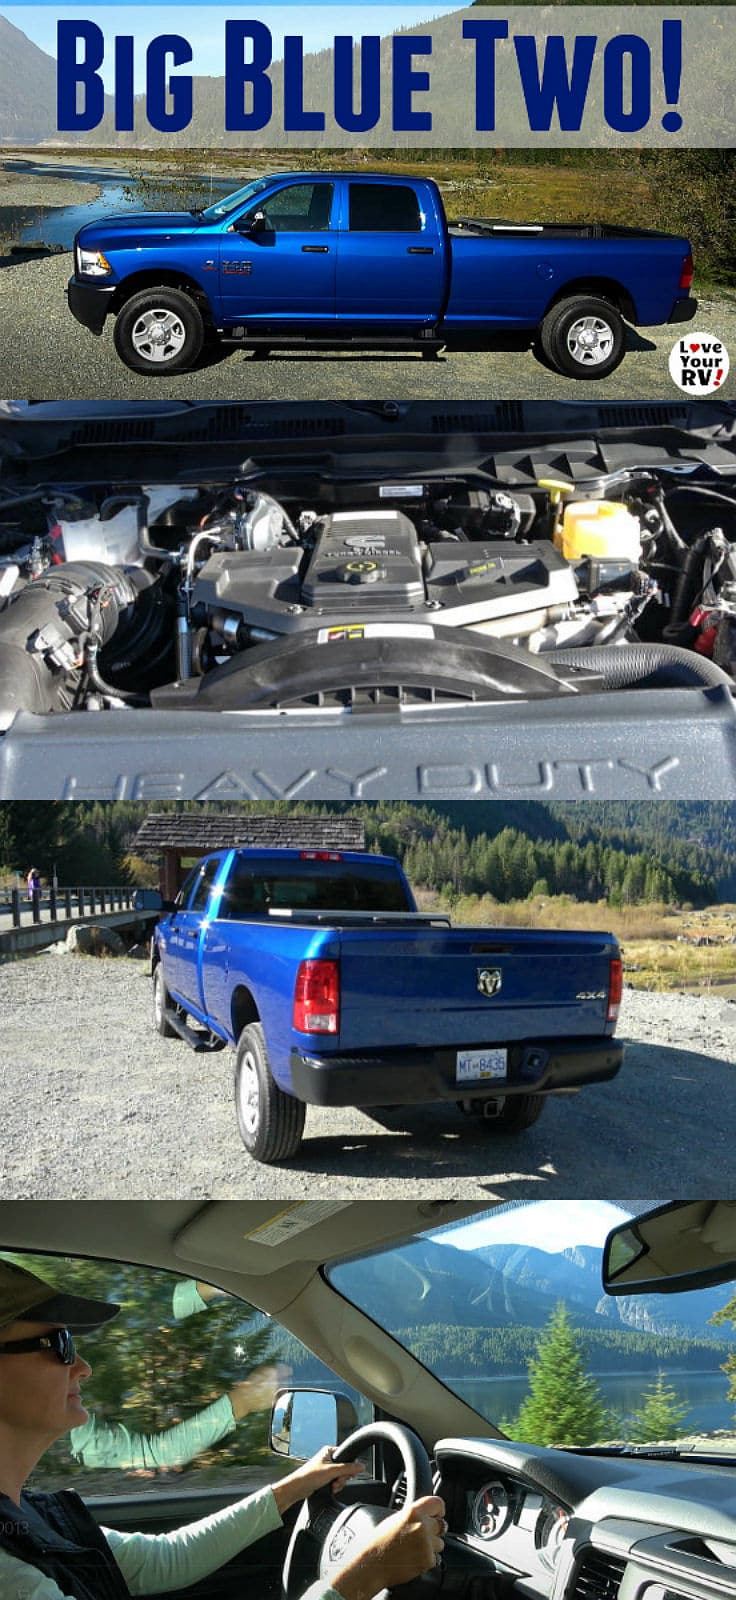 Tow Hitch Installation Near Me >> Introducing Our New Ram 3500 Truck - Big Blue II